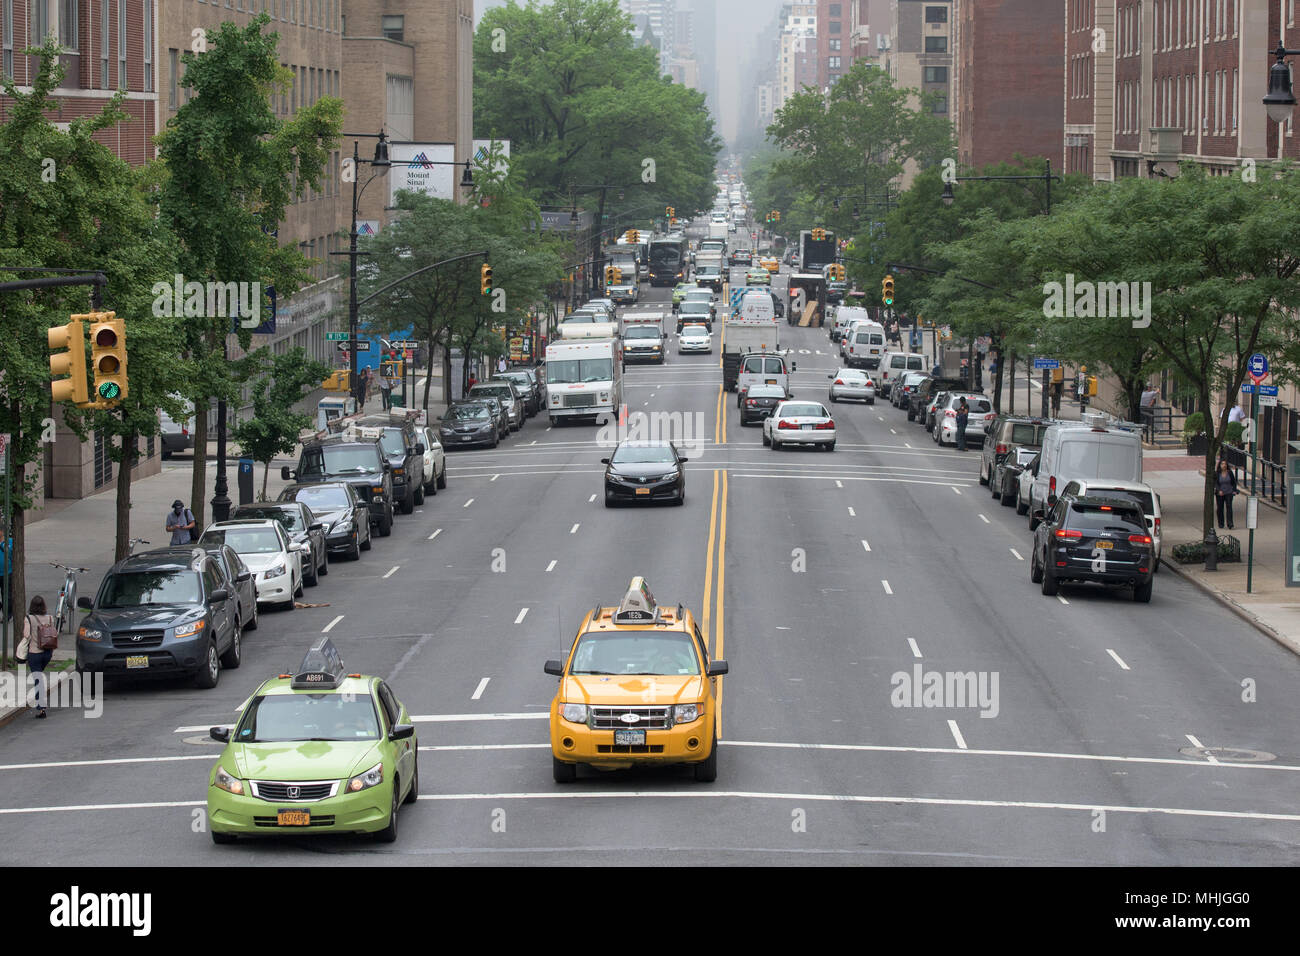 NEW YORK CITY - JUNE 14 2015: town congested street and avenue also on sunday Stock Photo